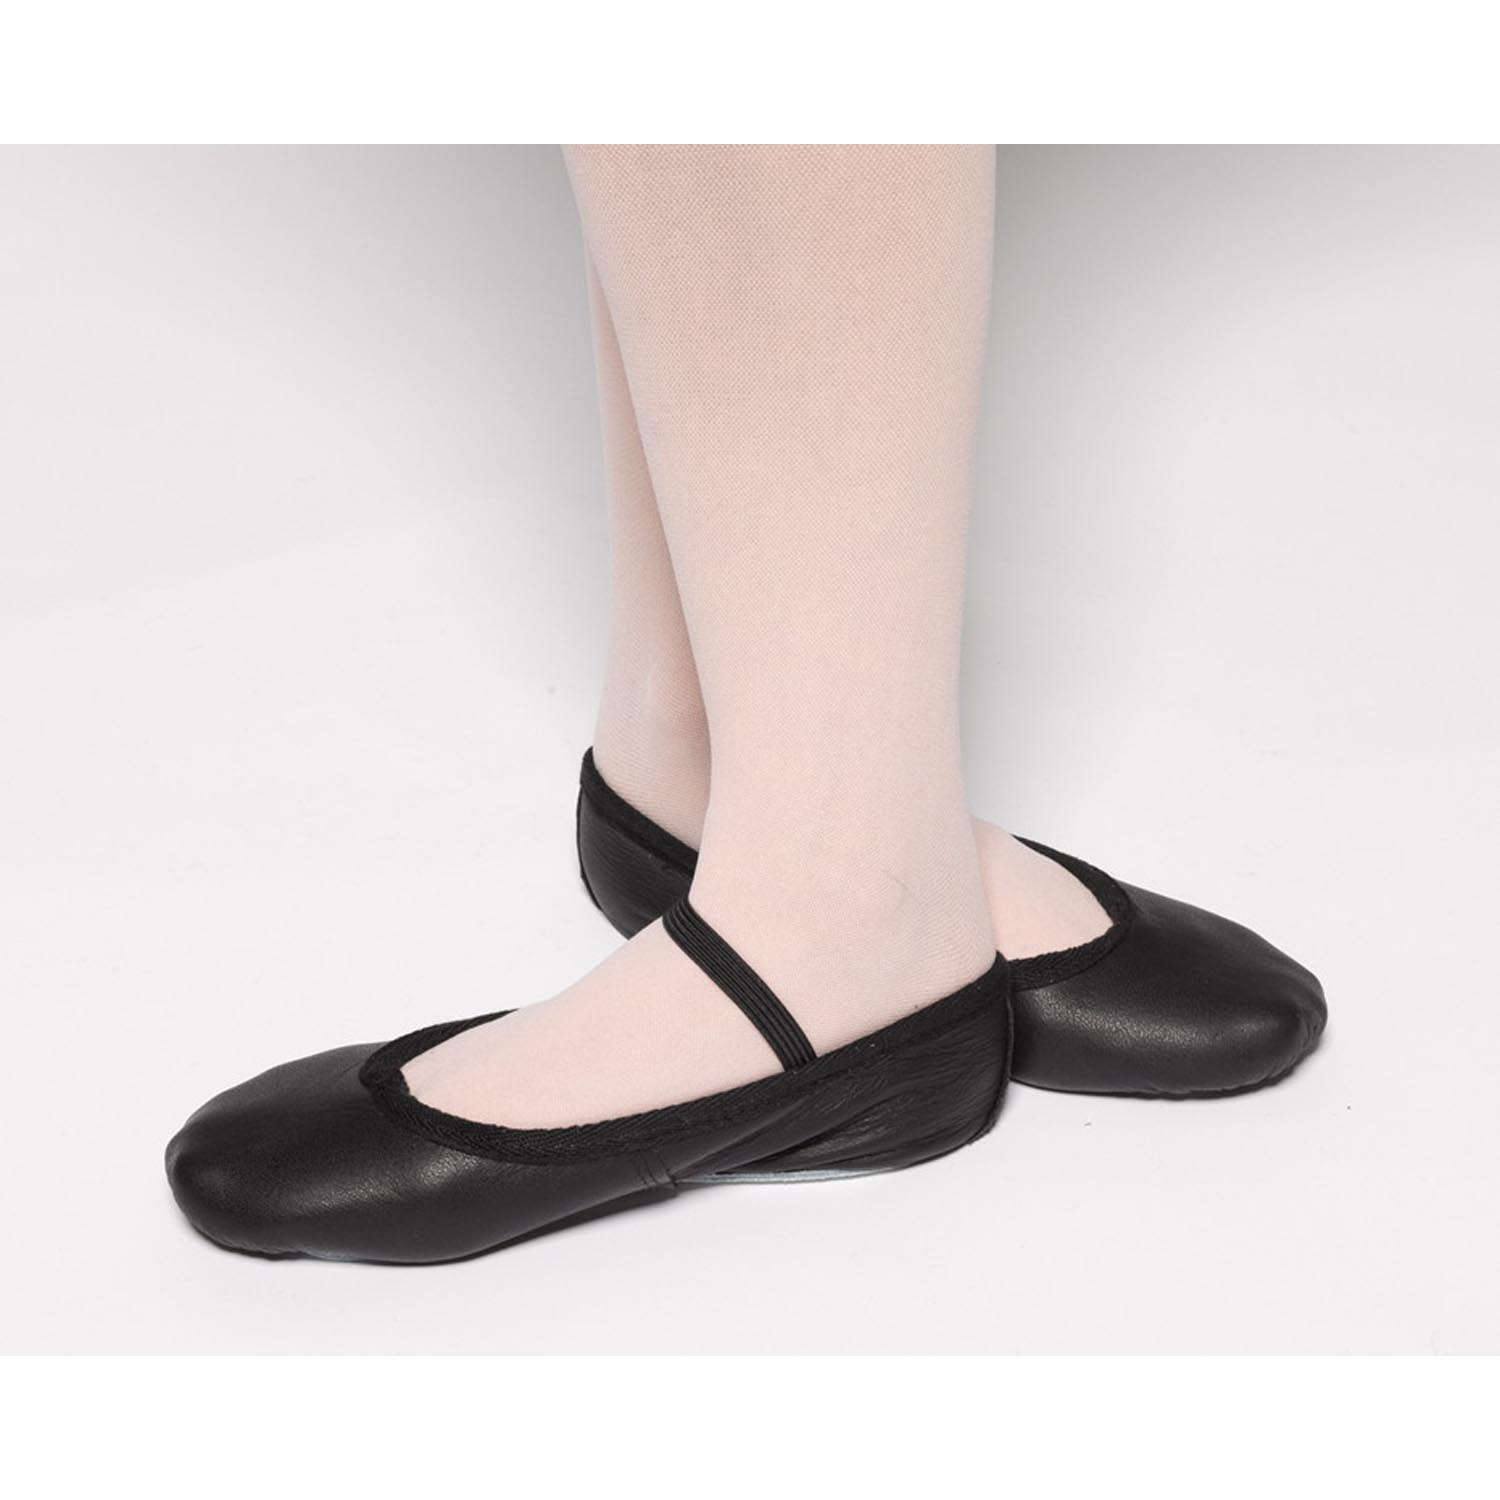 40779c7b9a207 Tappers and Pointers Elasticated Black Leather Ballet Shoes - Dancewear  Universe